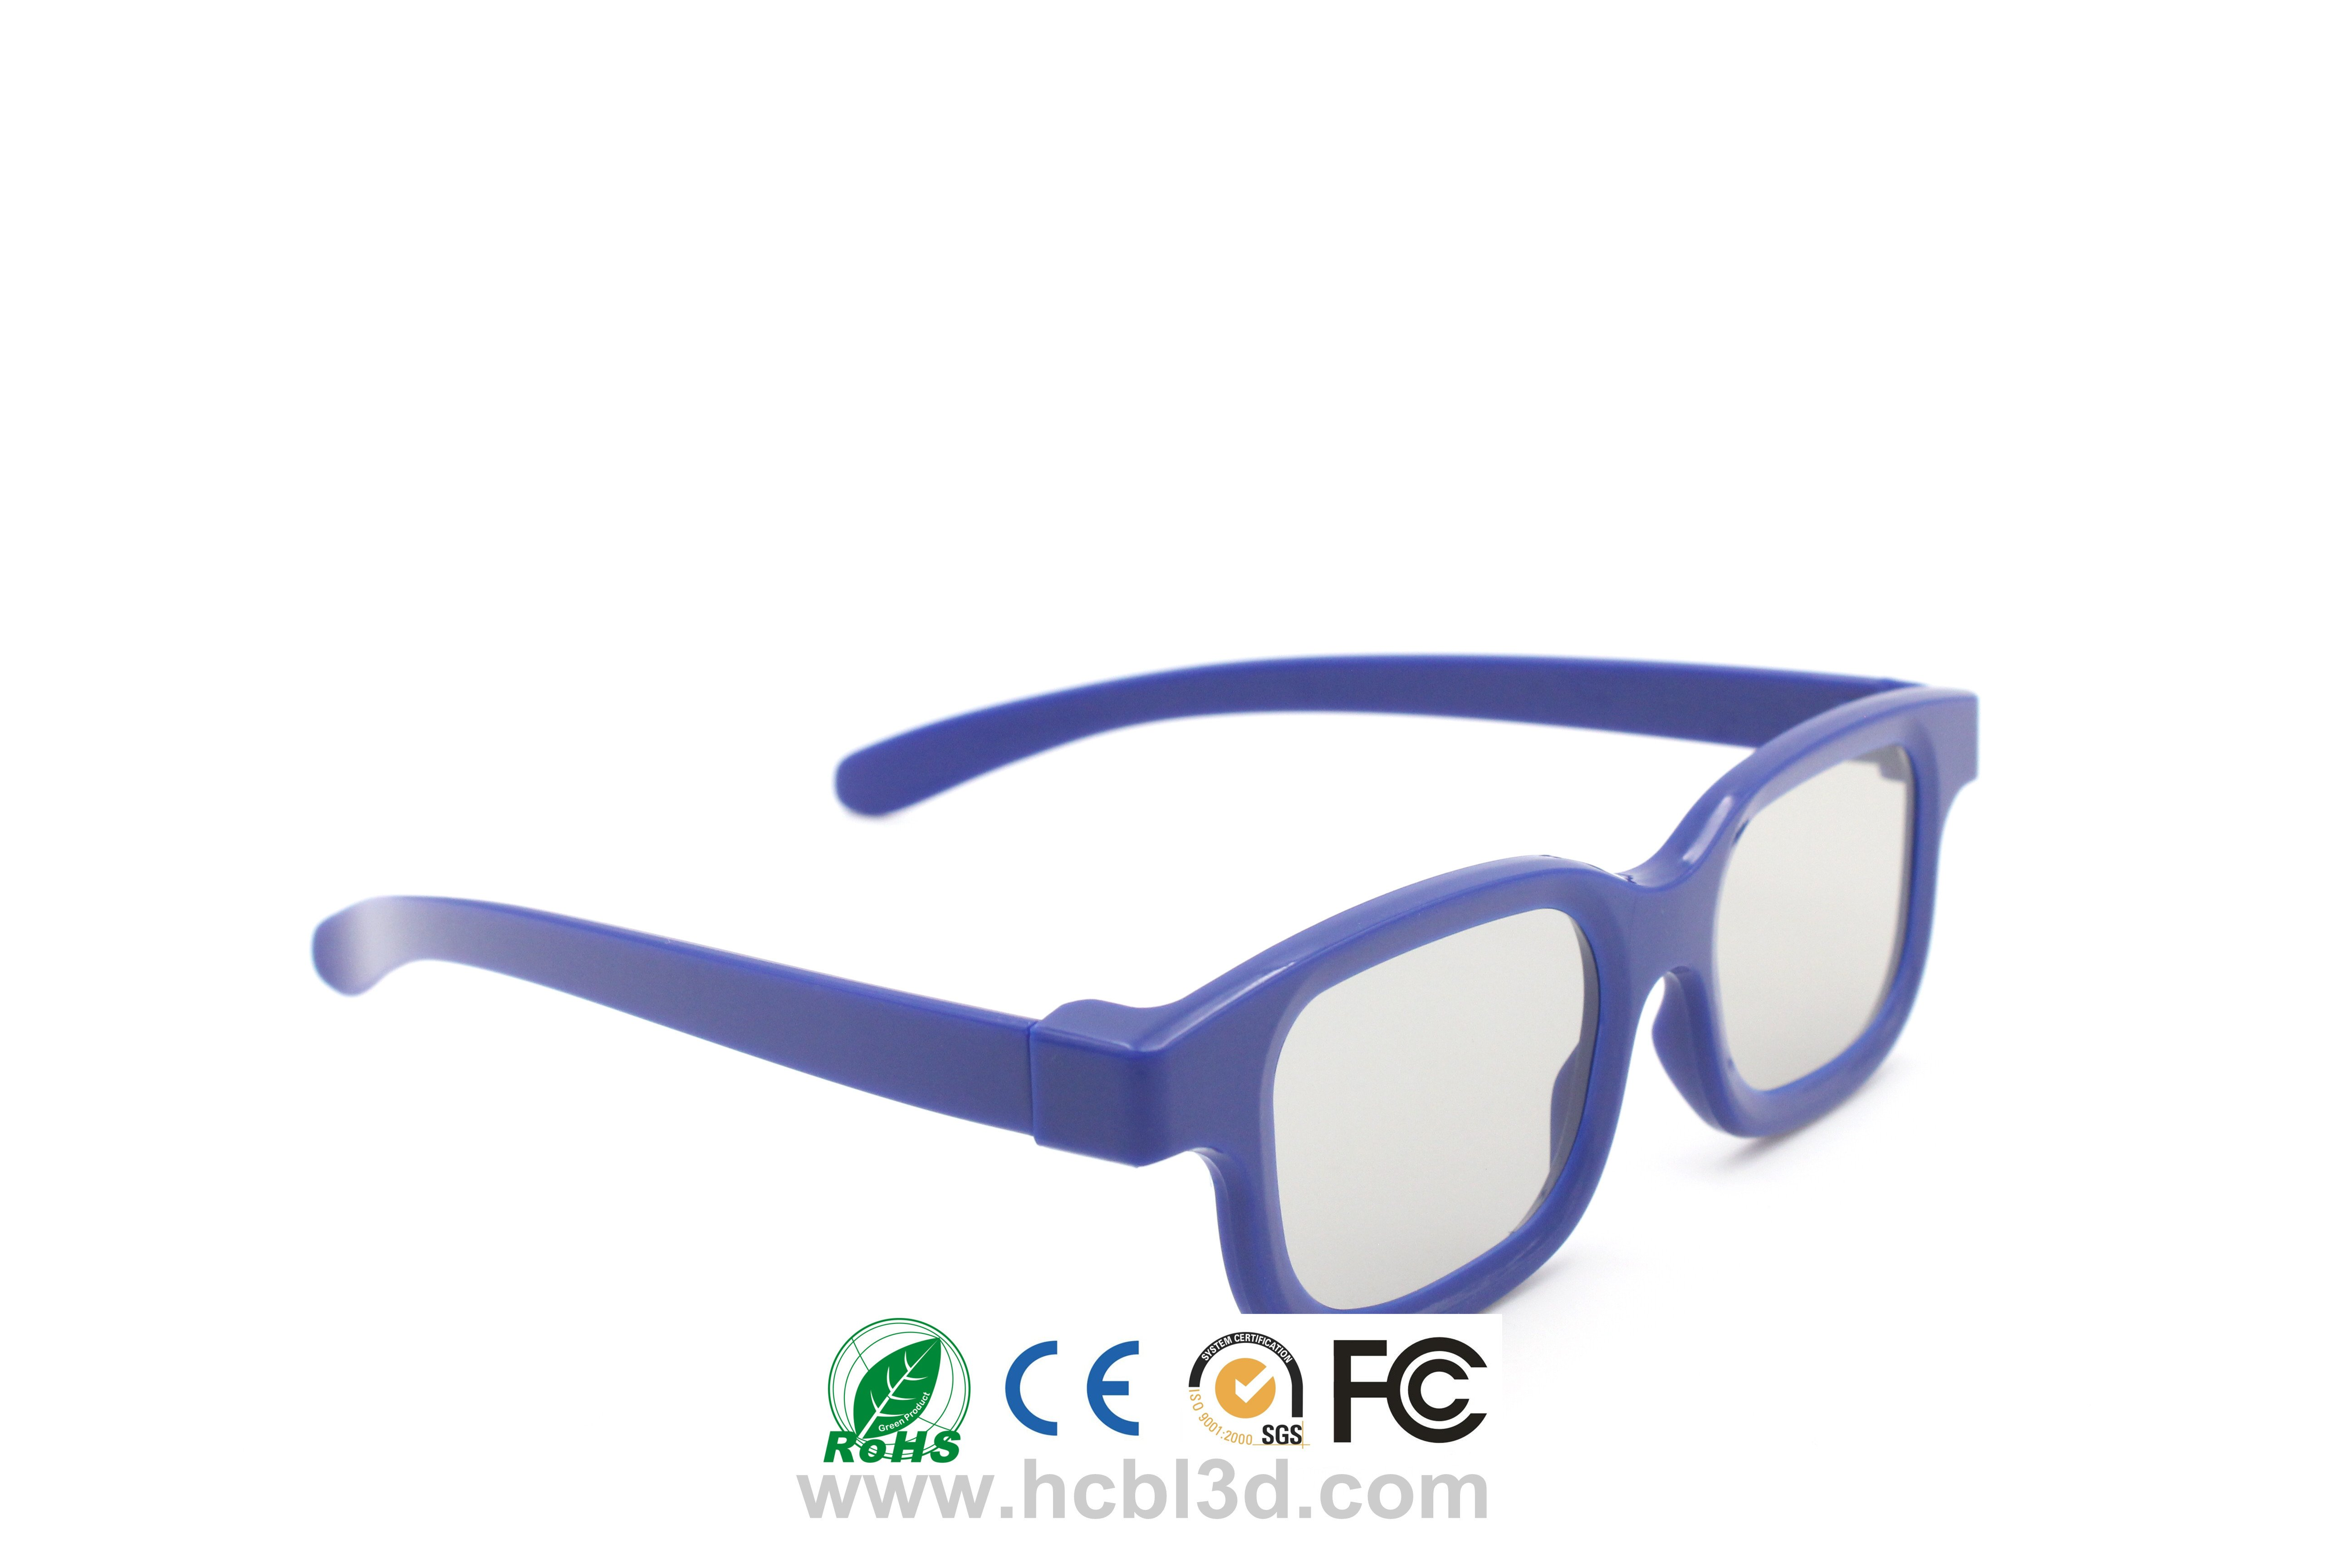 Universal Passive Cinema 3D Glasses With High Quality Polarized Lens for best 3D experience